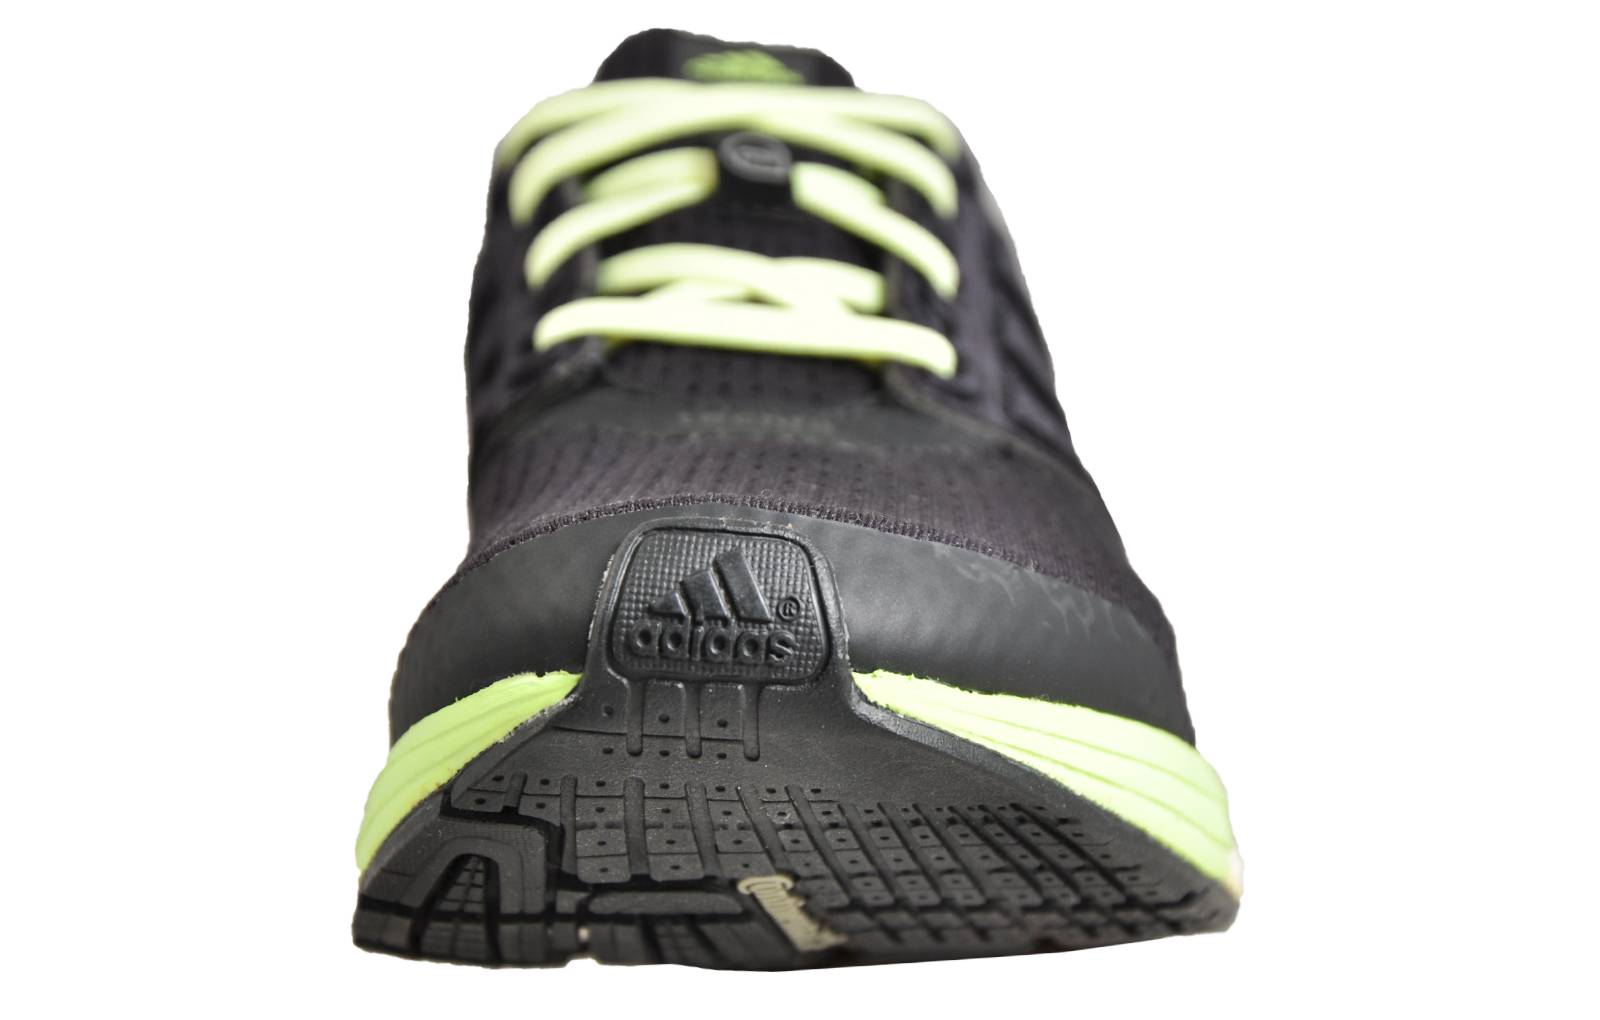 d1a5ade6131fa Adidas Supernova Glide Boost 7 Women s Premium Running Shoes Fitness Gym  Trainers